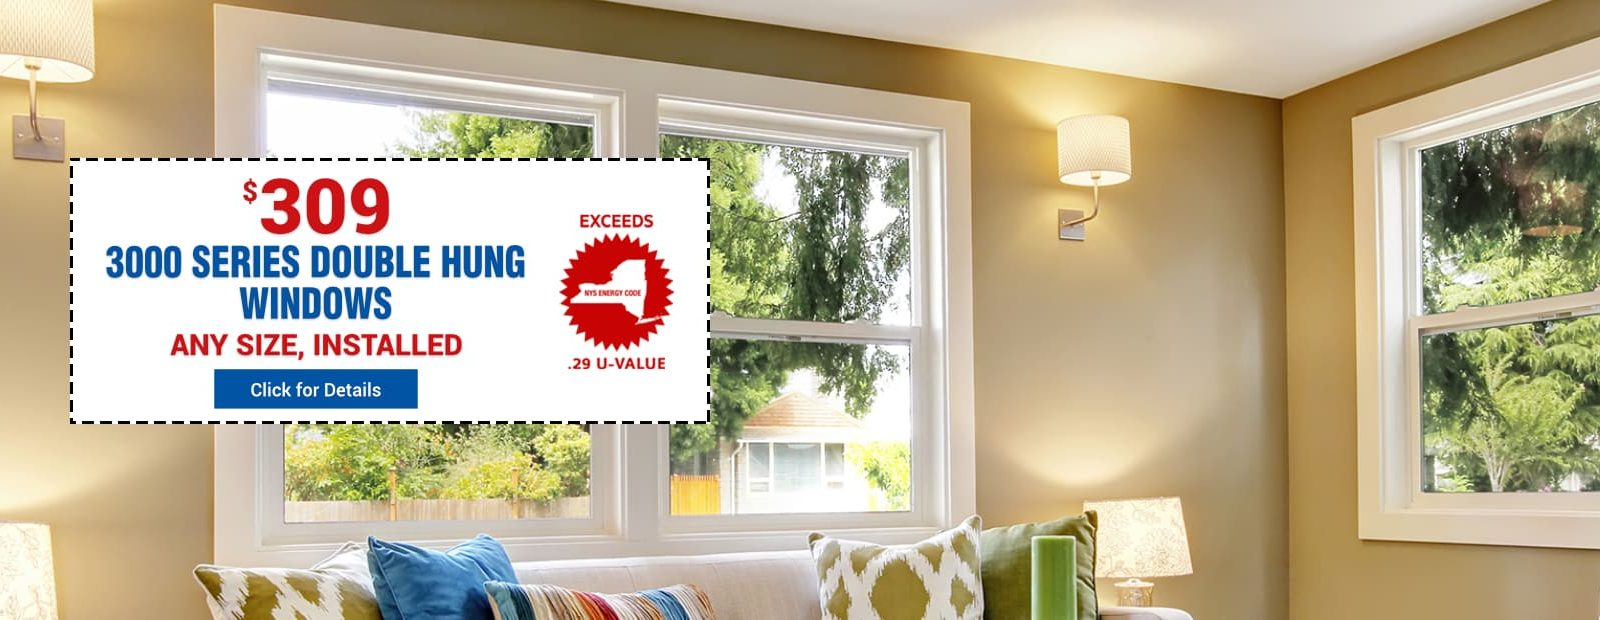 3000 Series Double Hung Windows - Offer Price